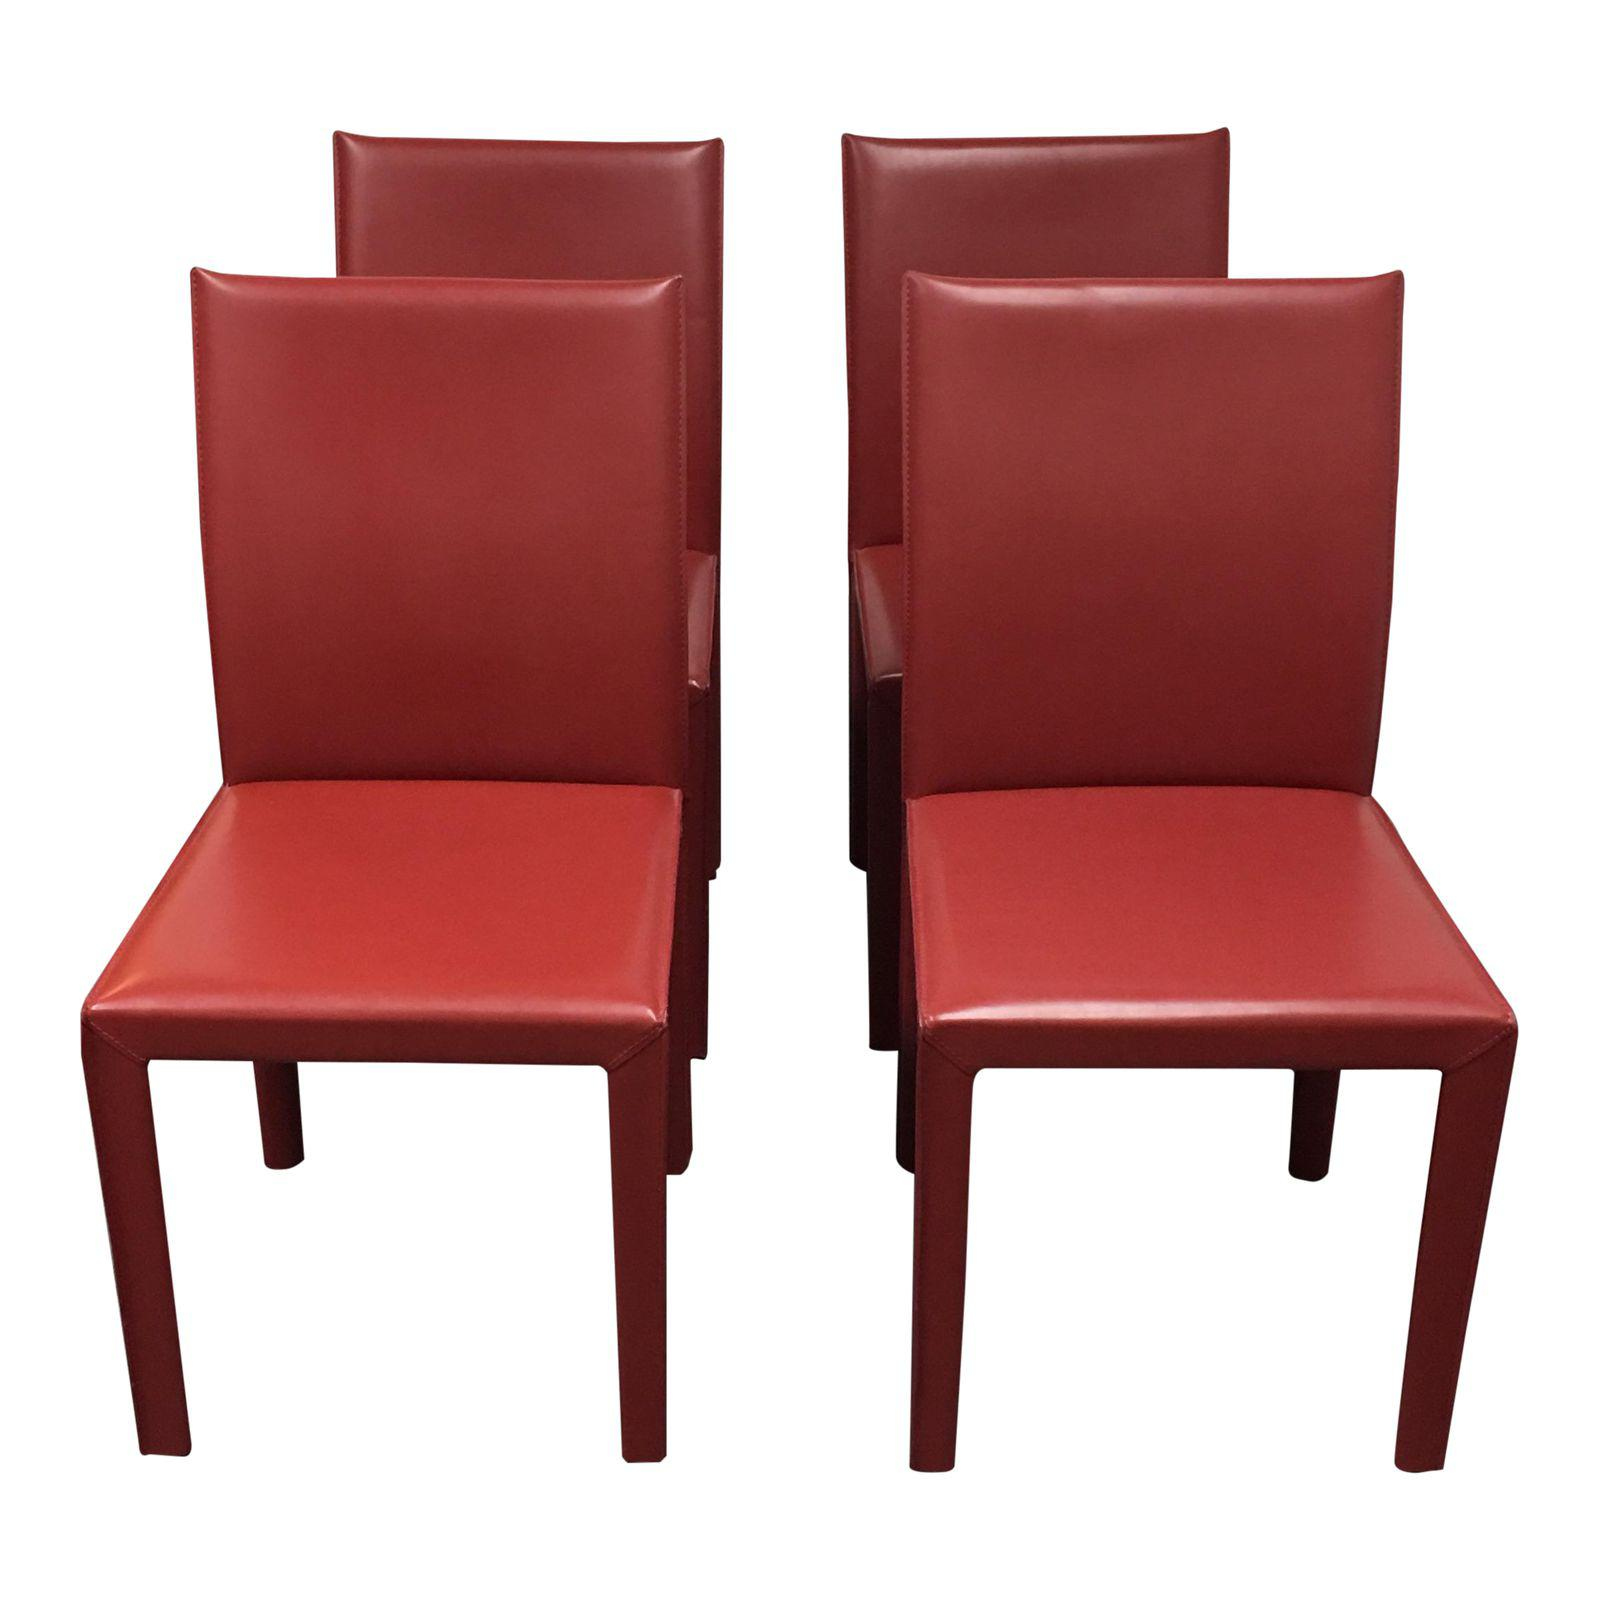 Picture of: Crate Barrel Folio Chairs Set Of 4 Design Plus Gallery